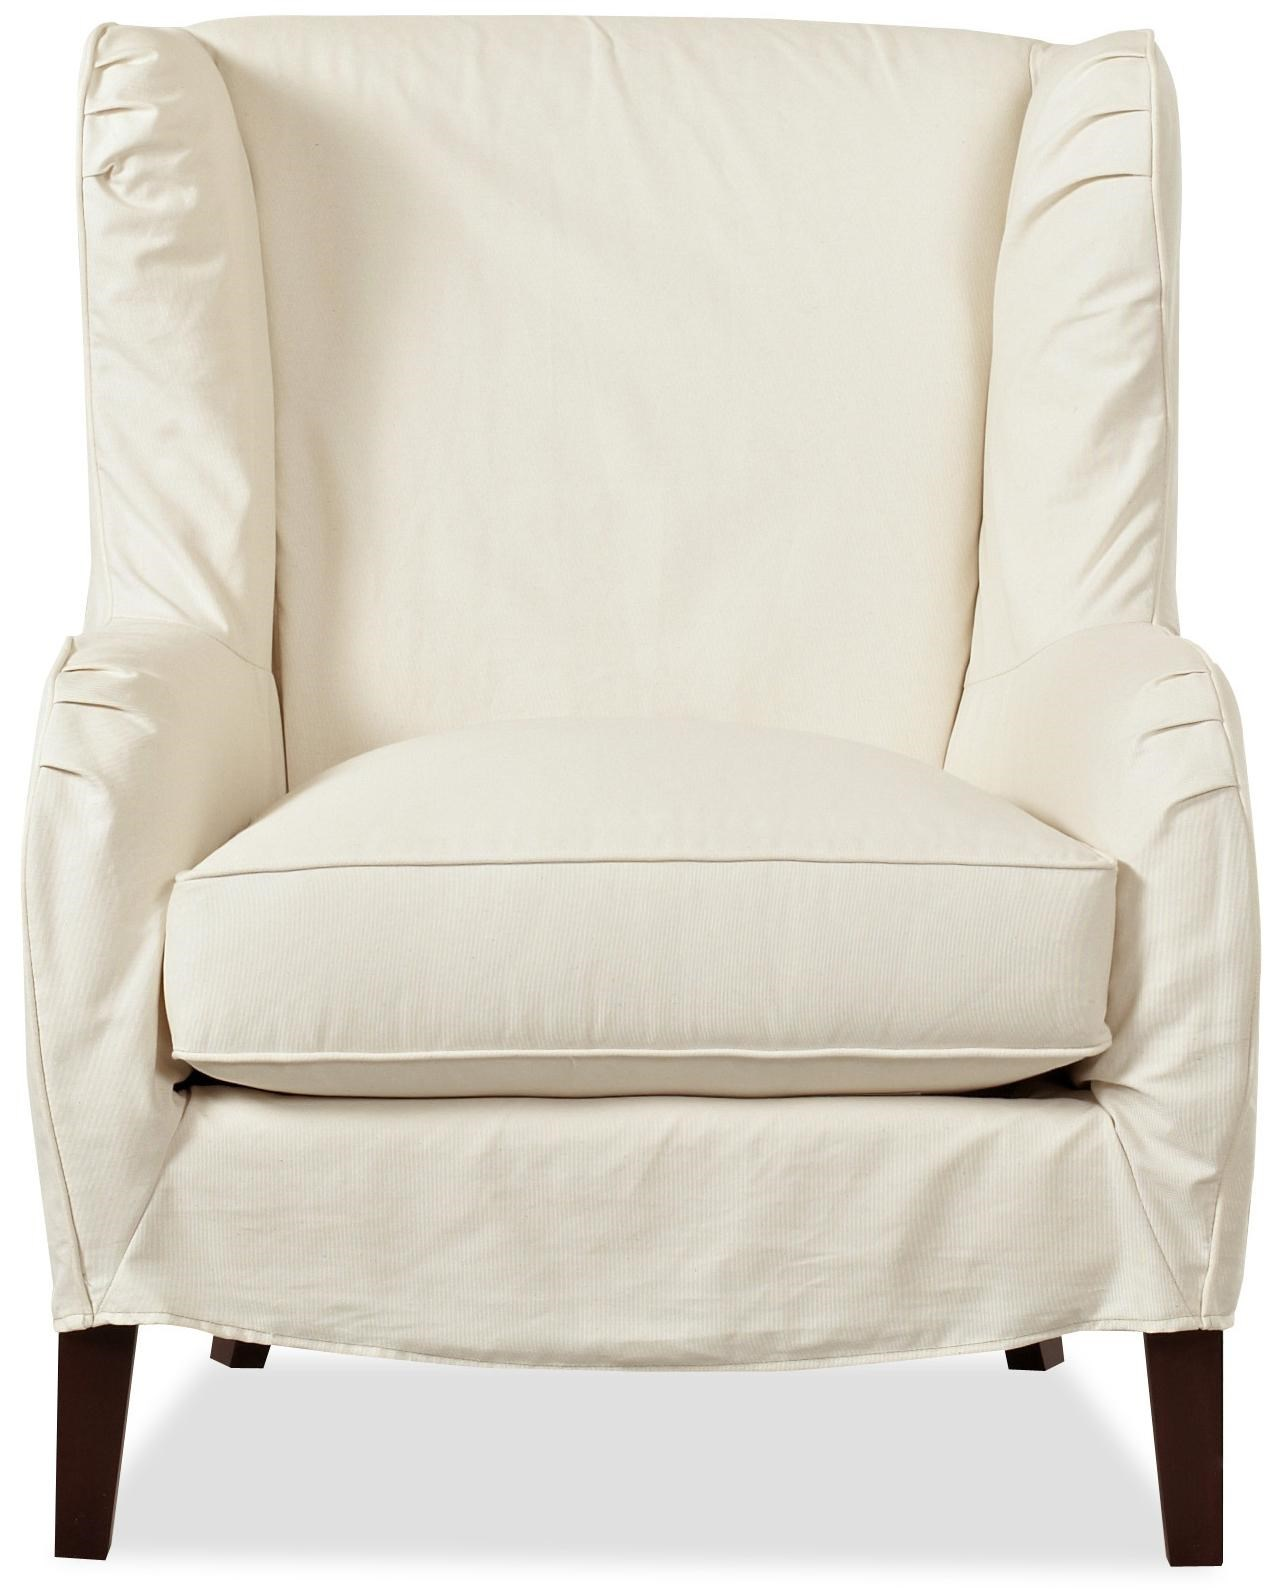 Elegant Klaussner Chairs And Accents Polo Transitional Slipcover Wing Chair